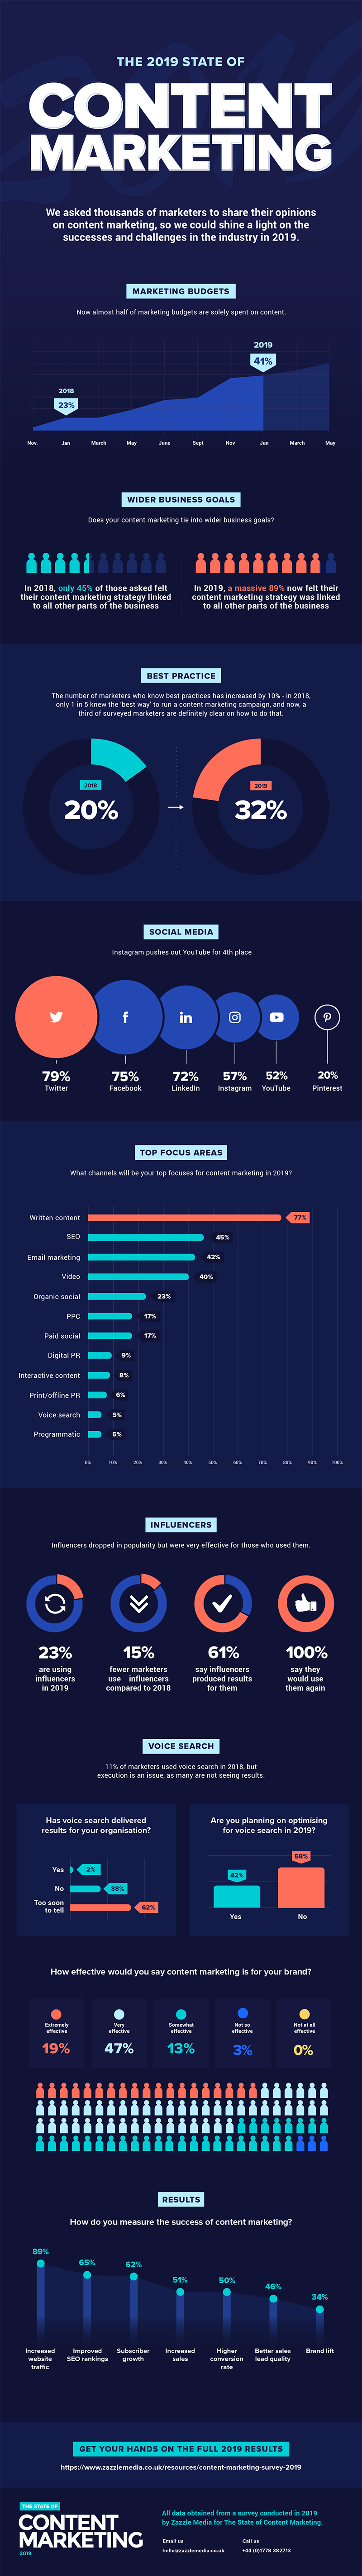 Infographic provides an overview of a recent content marketing survey report